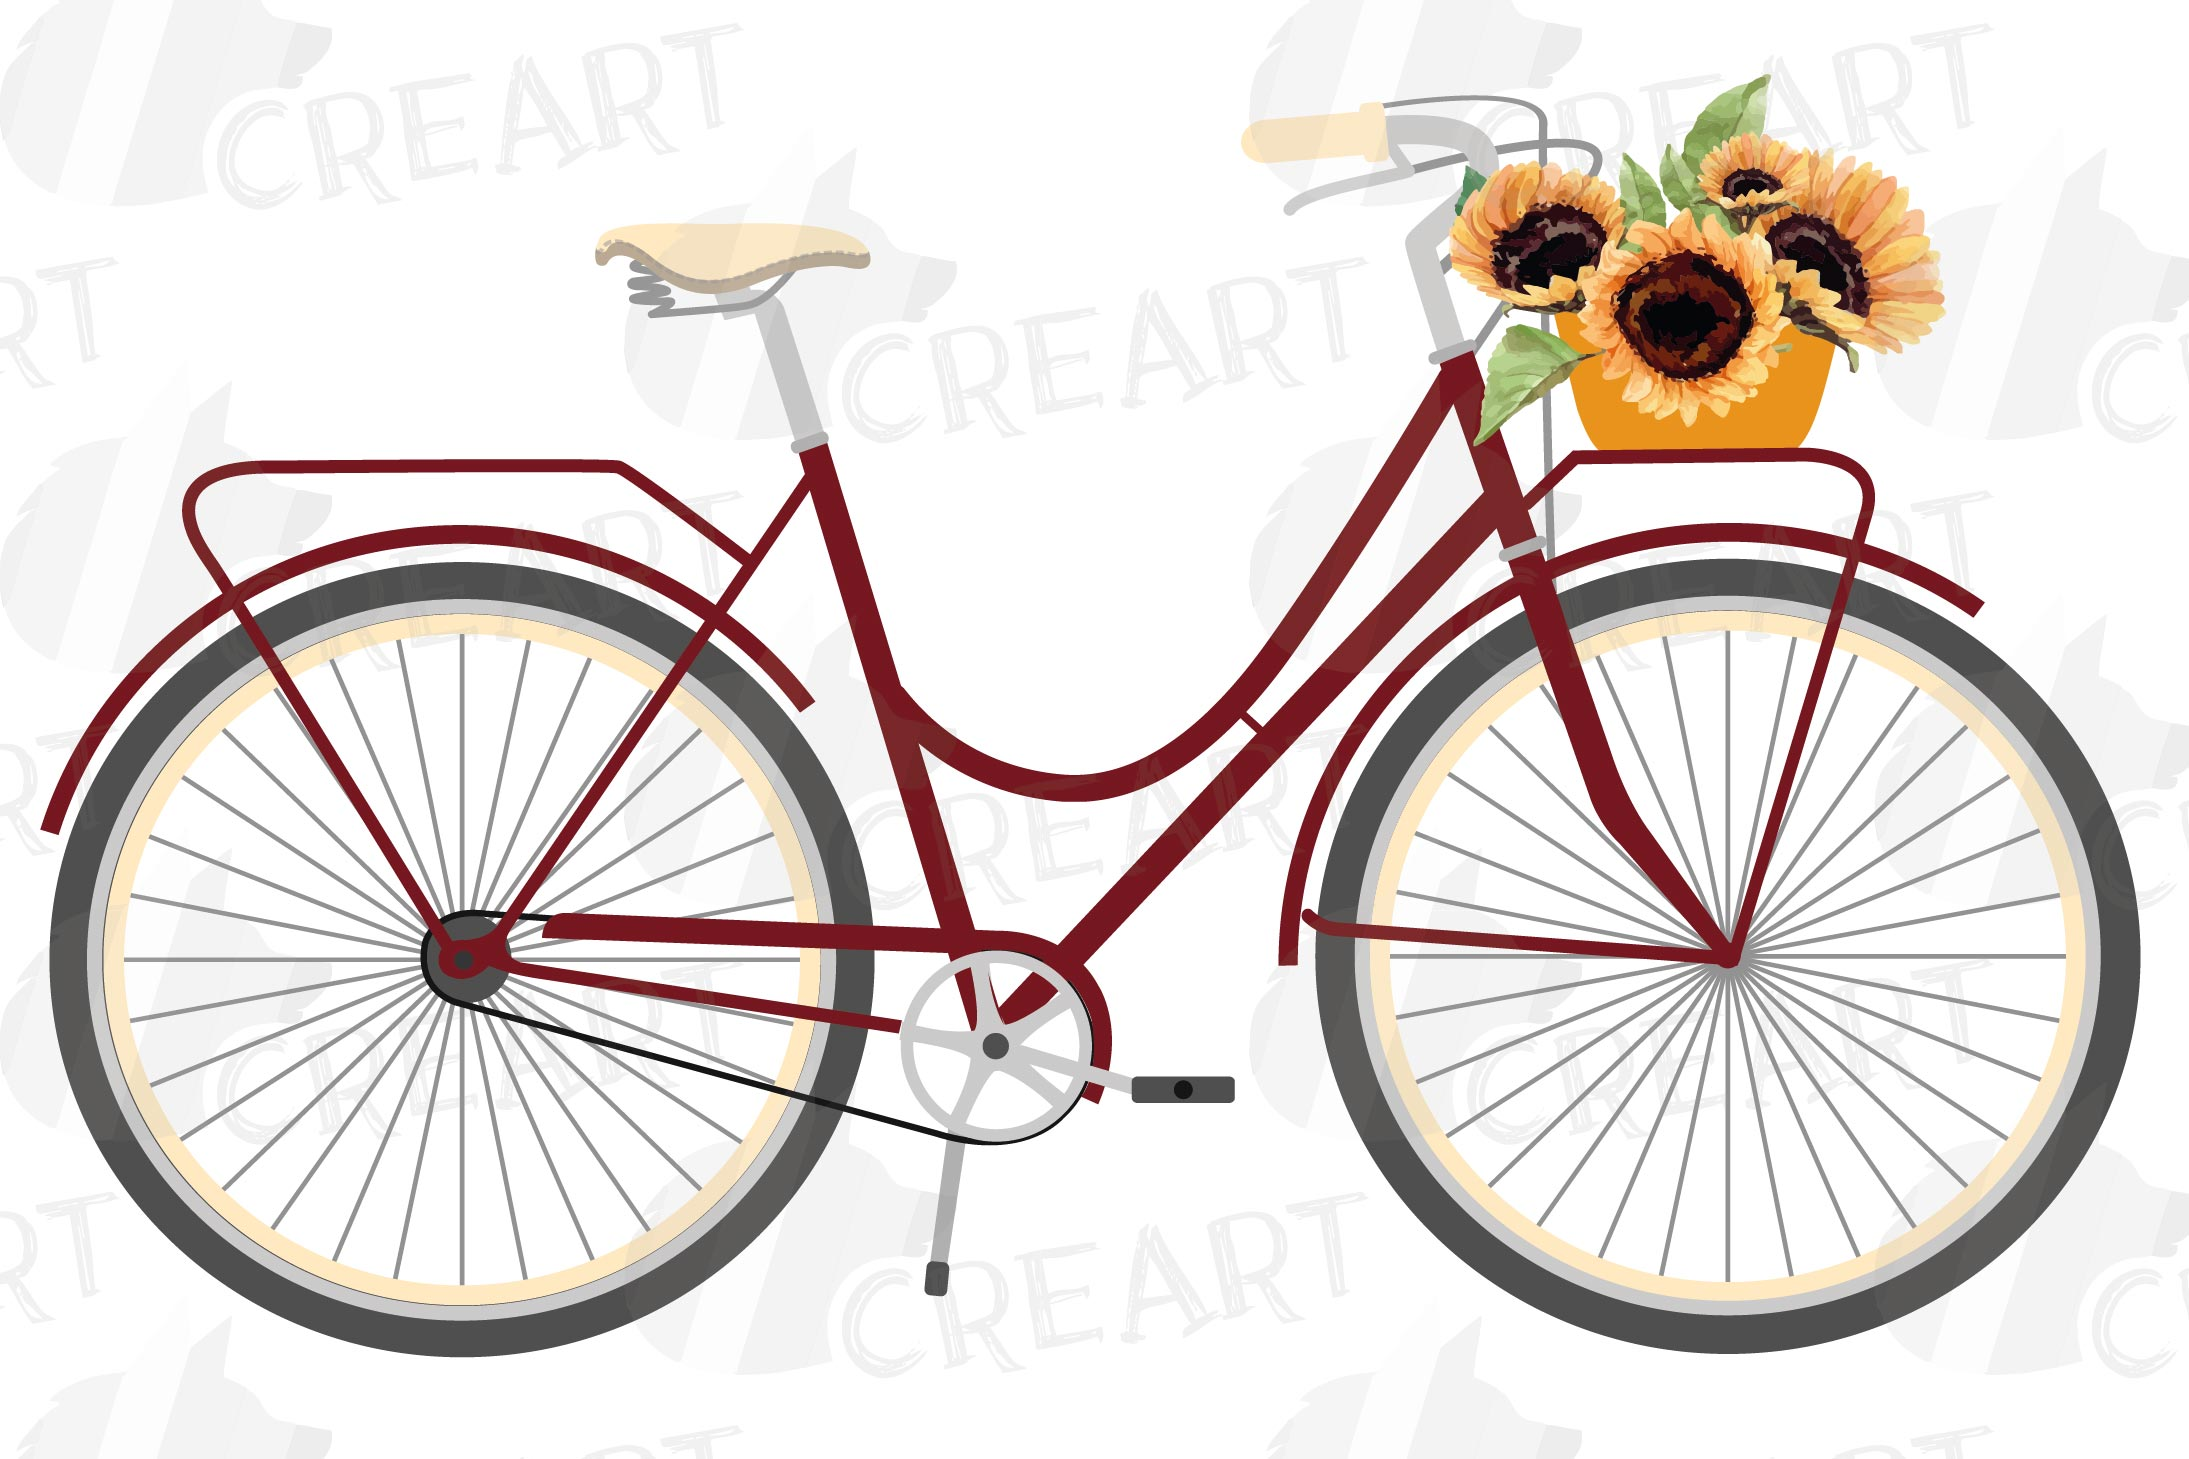 Sunflower bouquets bicycles clip art. Floral bikes decor png example image 5